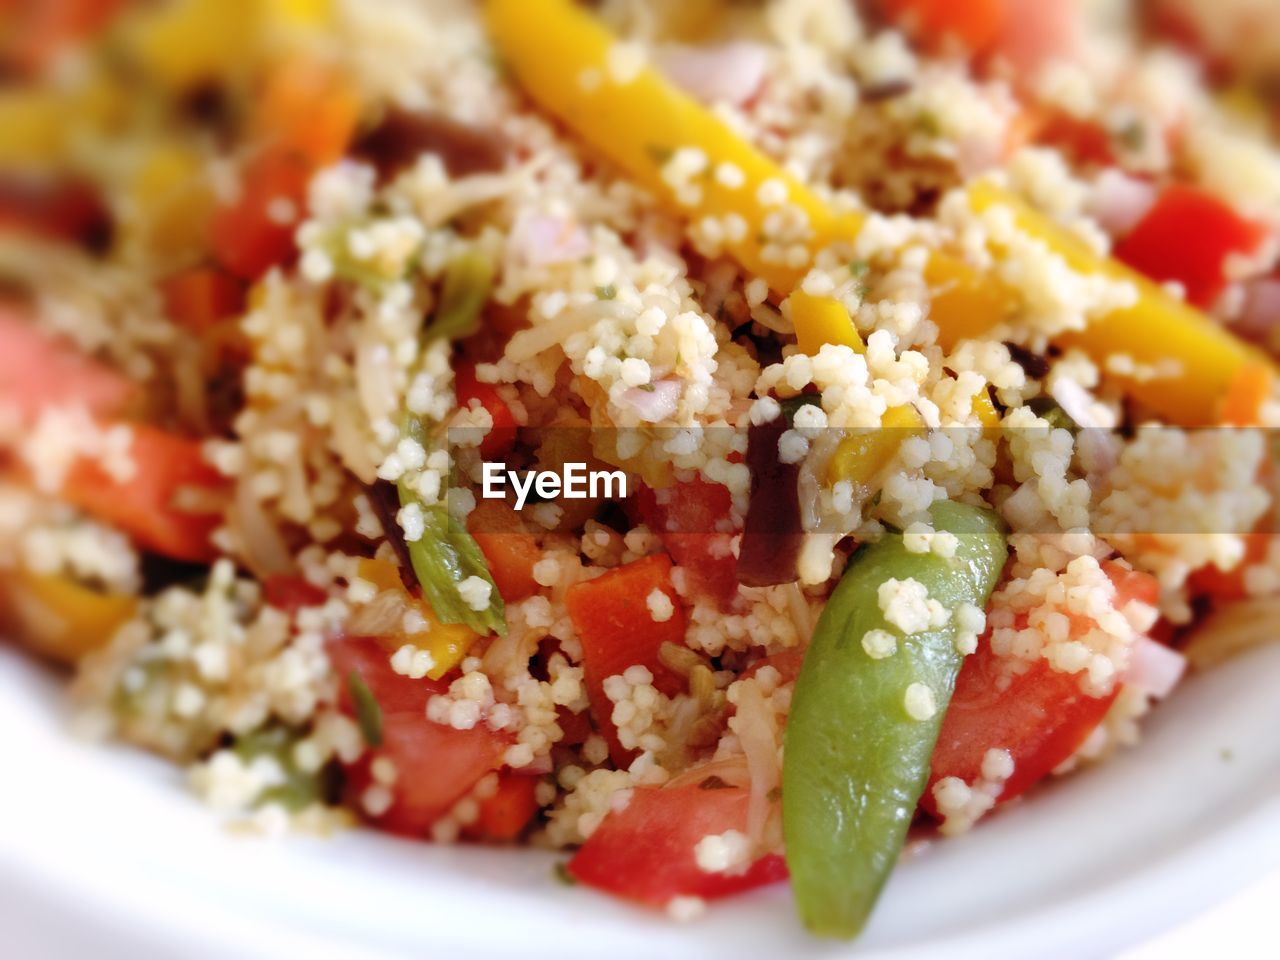 food and drink, plate, food, healthy eating, ready-to-eat, indoors, vegetable, tomato, serving size, no people, close-up, freshness, red, vegetarian food, fried rice, day